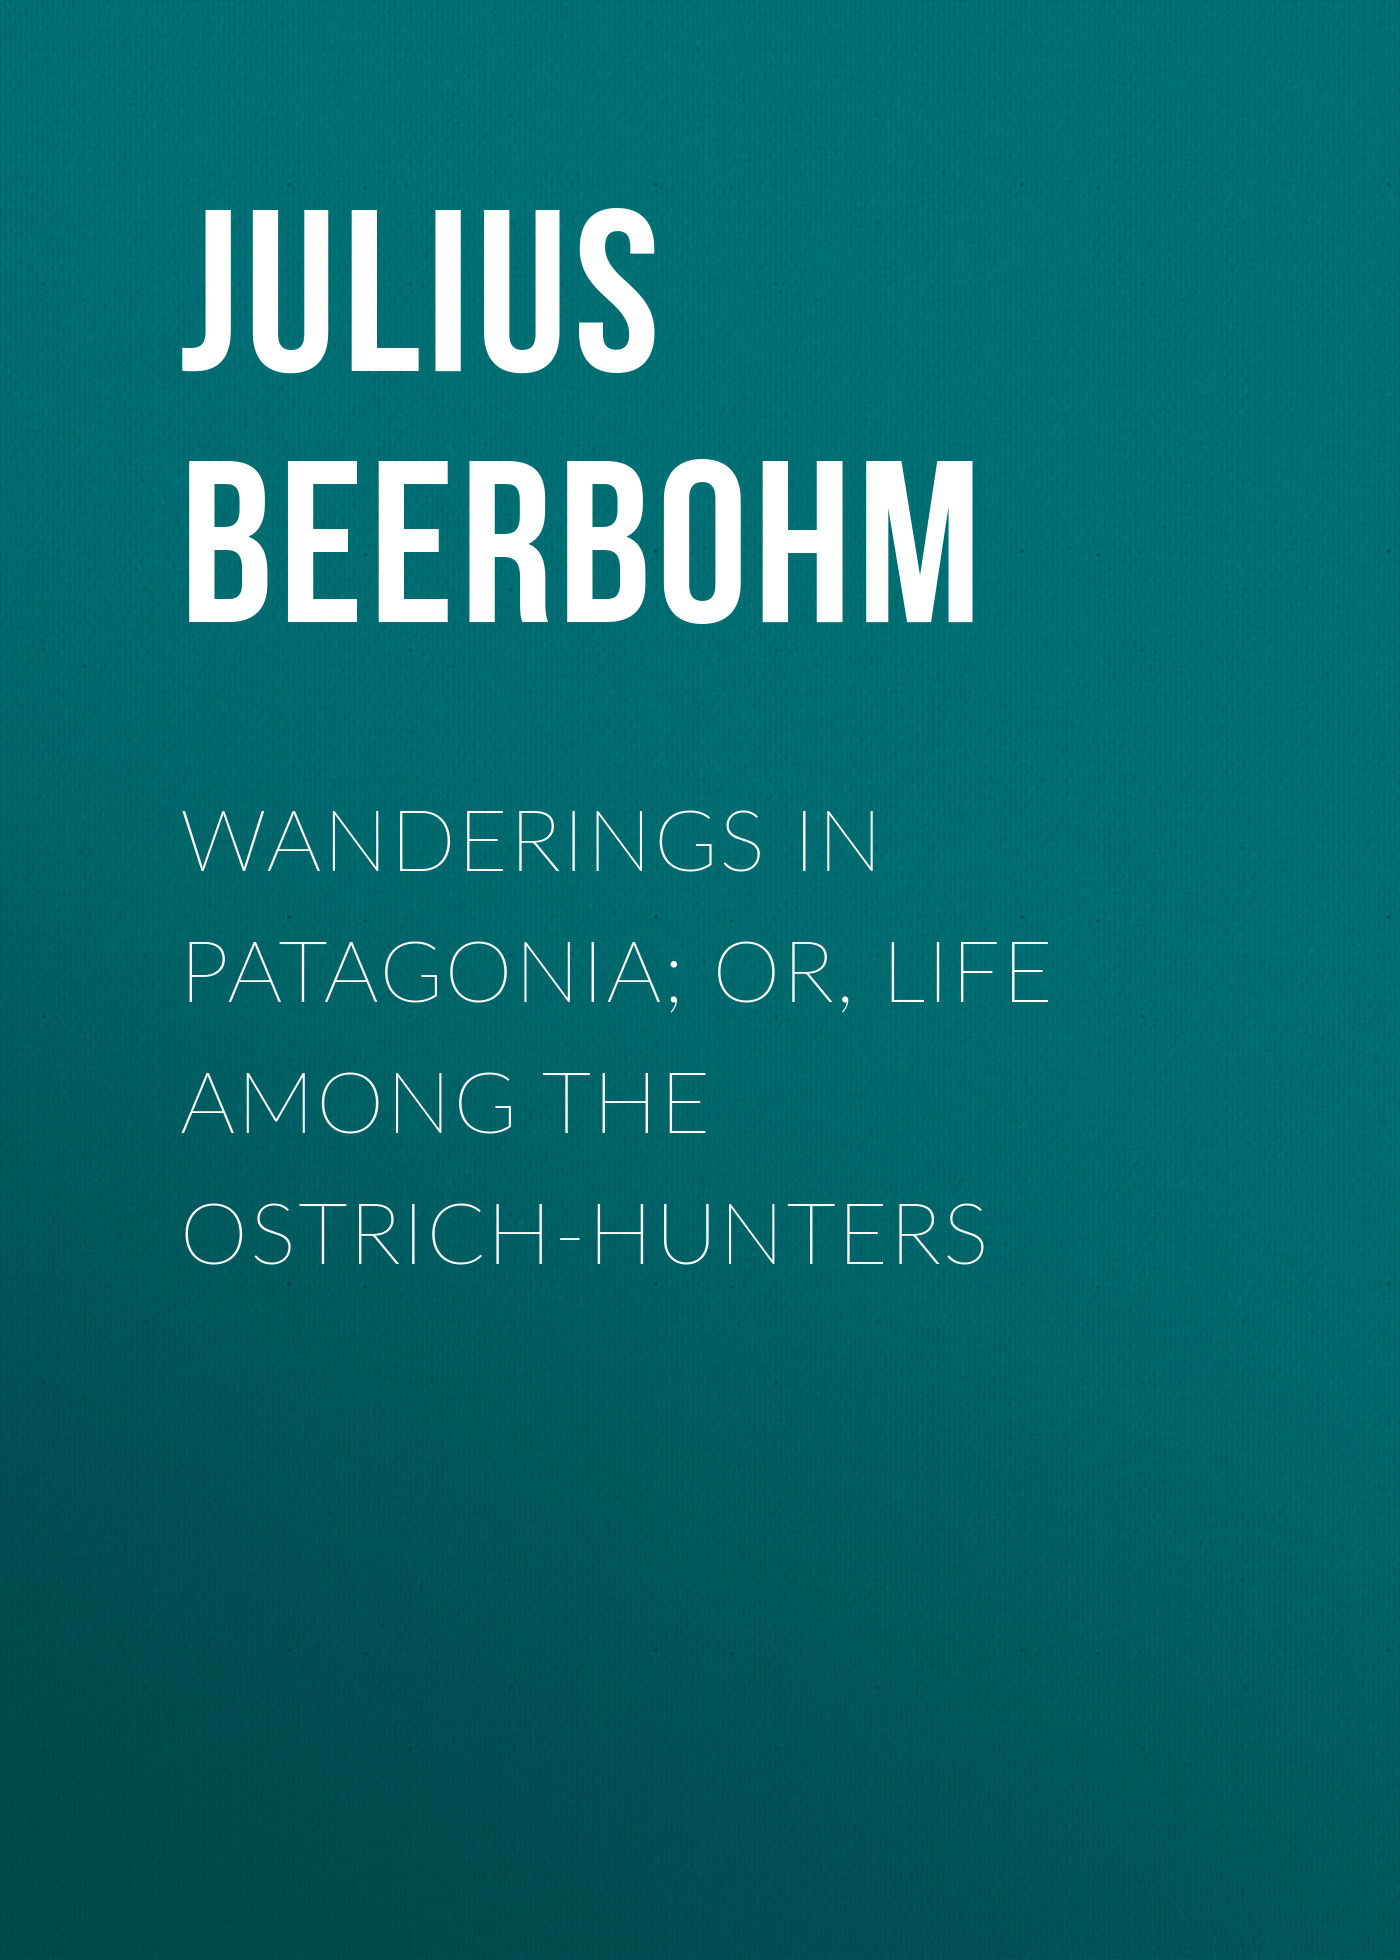 Beerbohm Julius Wanderings in Patagonia; Or, Life Among the Ostrich-Hunters bowman anne the kangaroo hunters or adventures in the bush